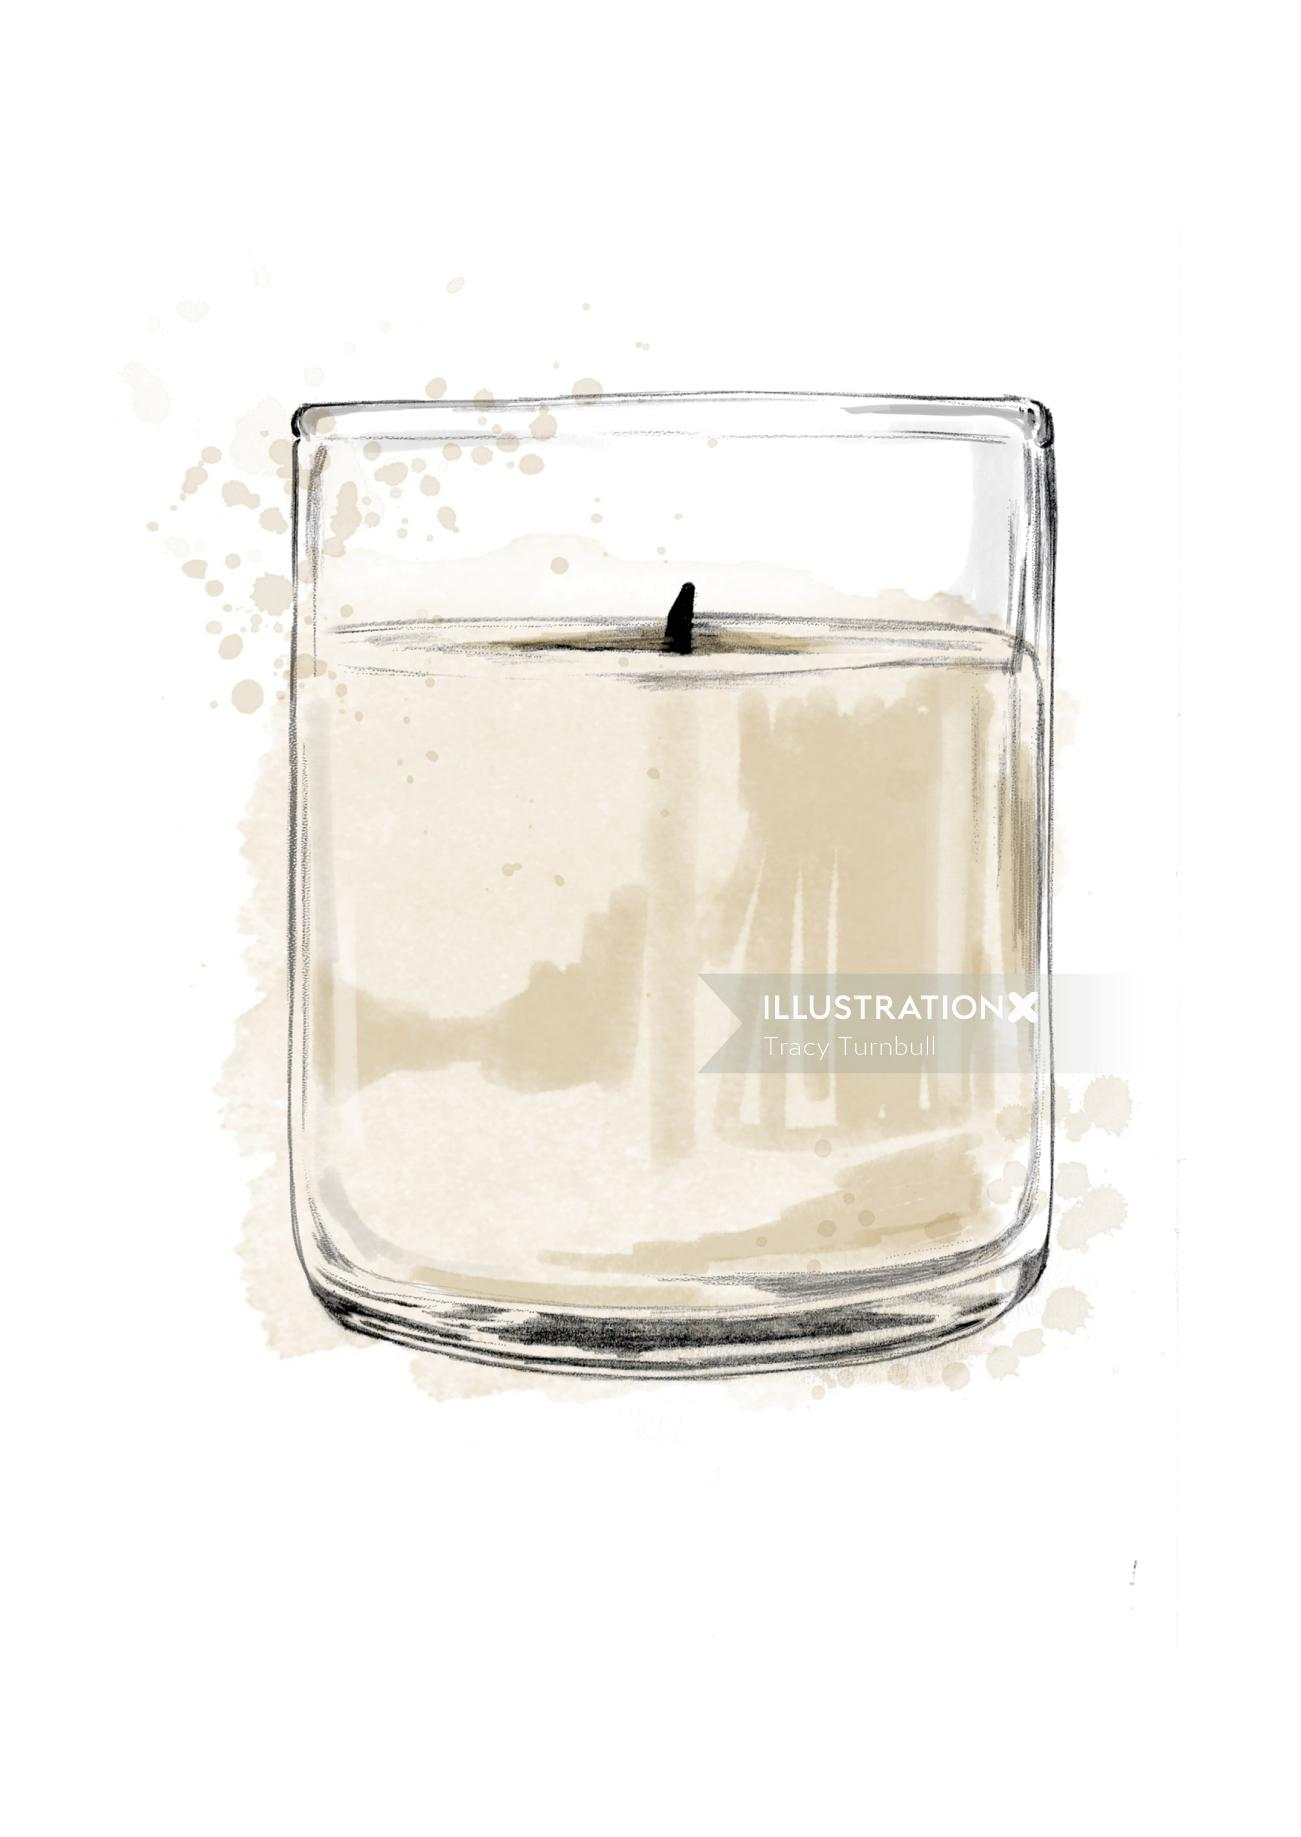 Candle in glass jar illustration